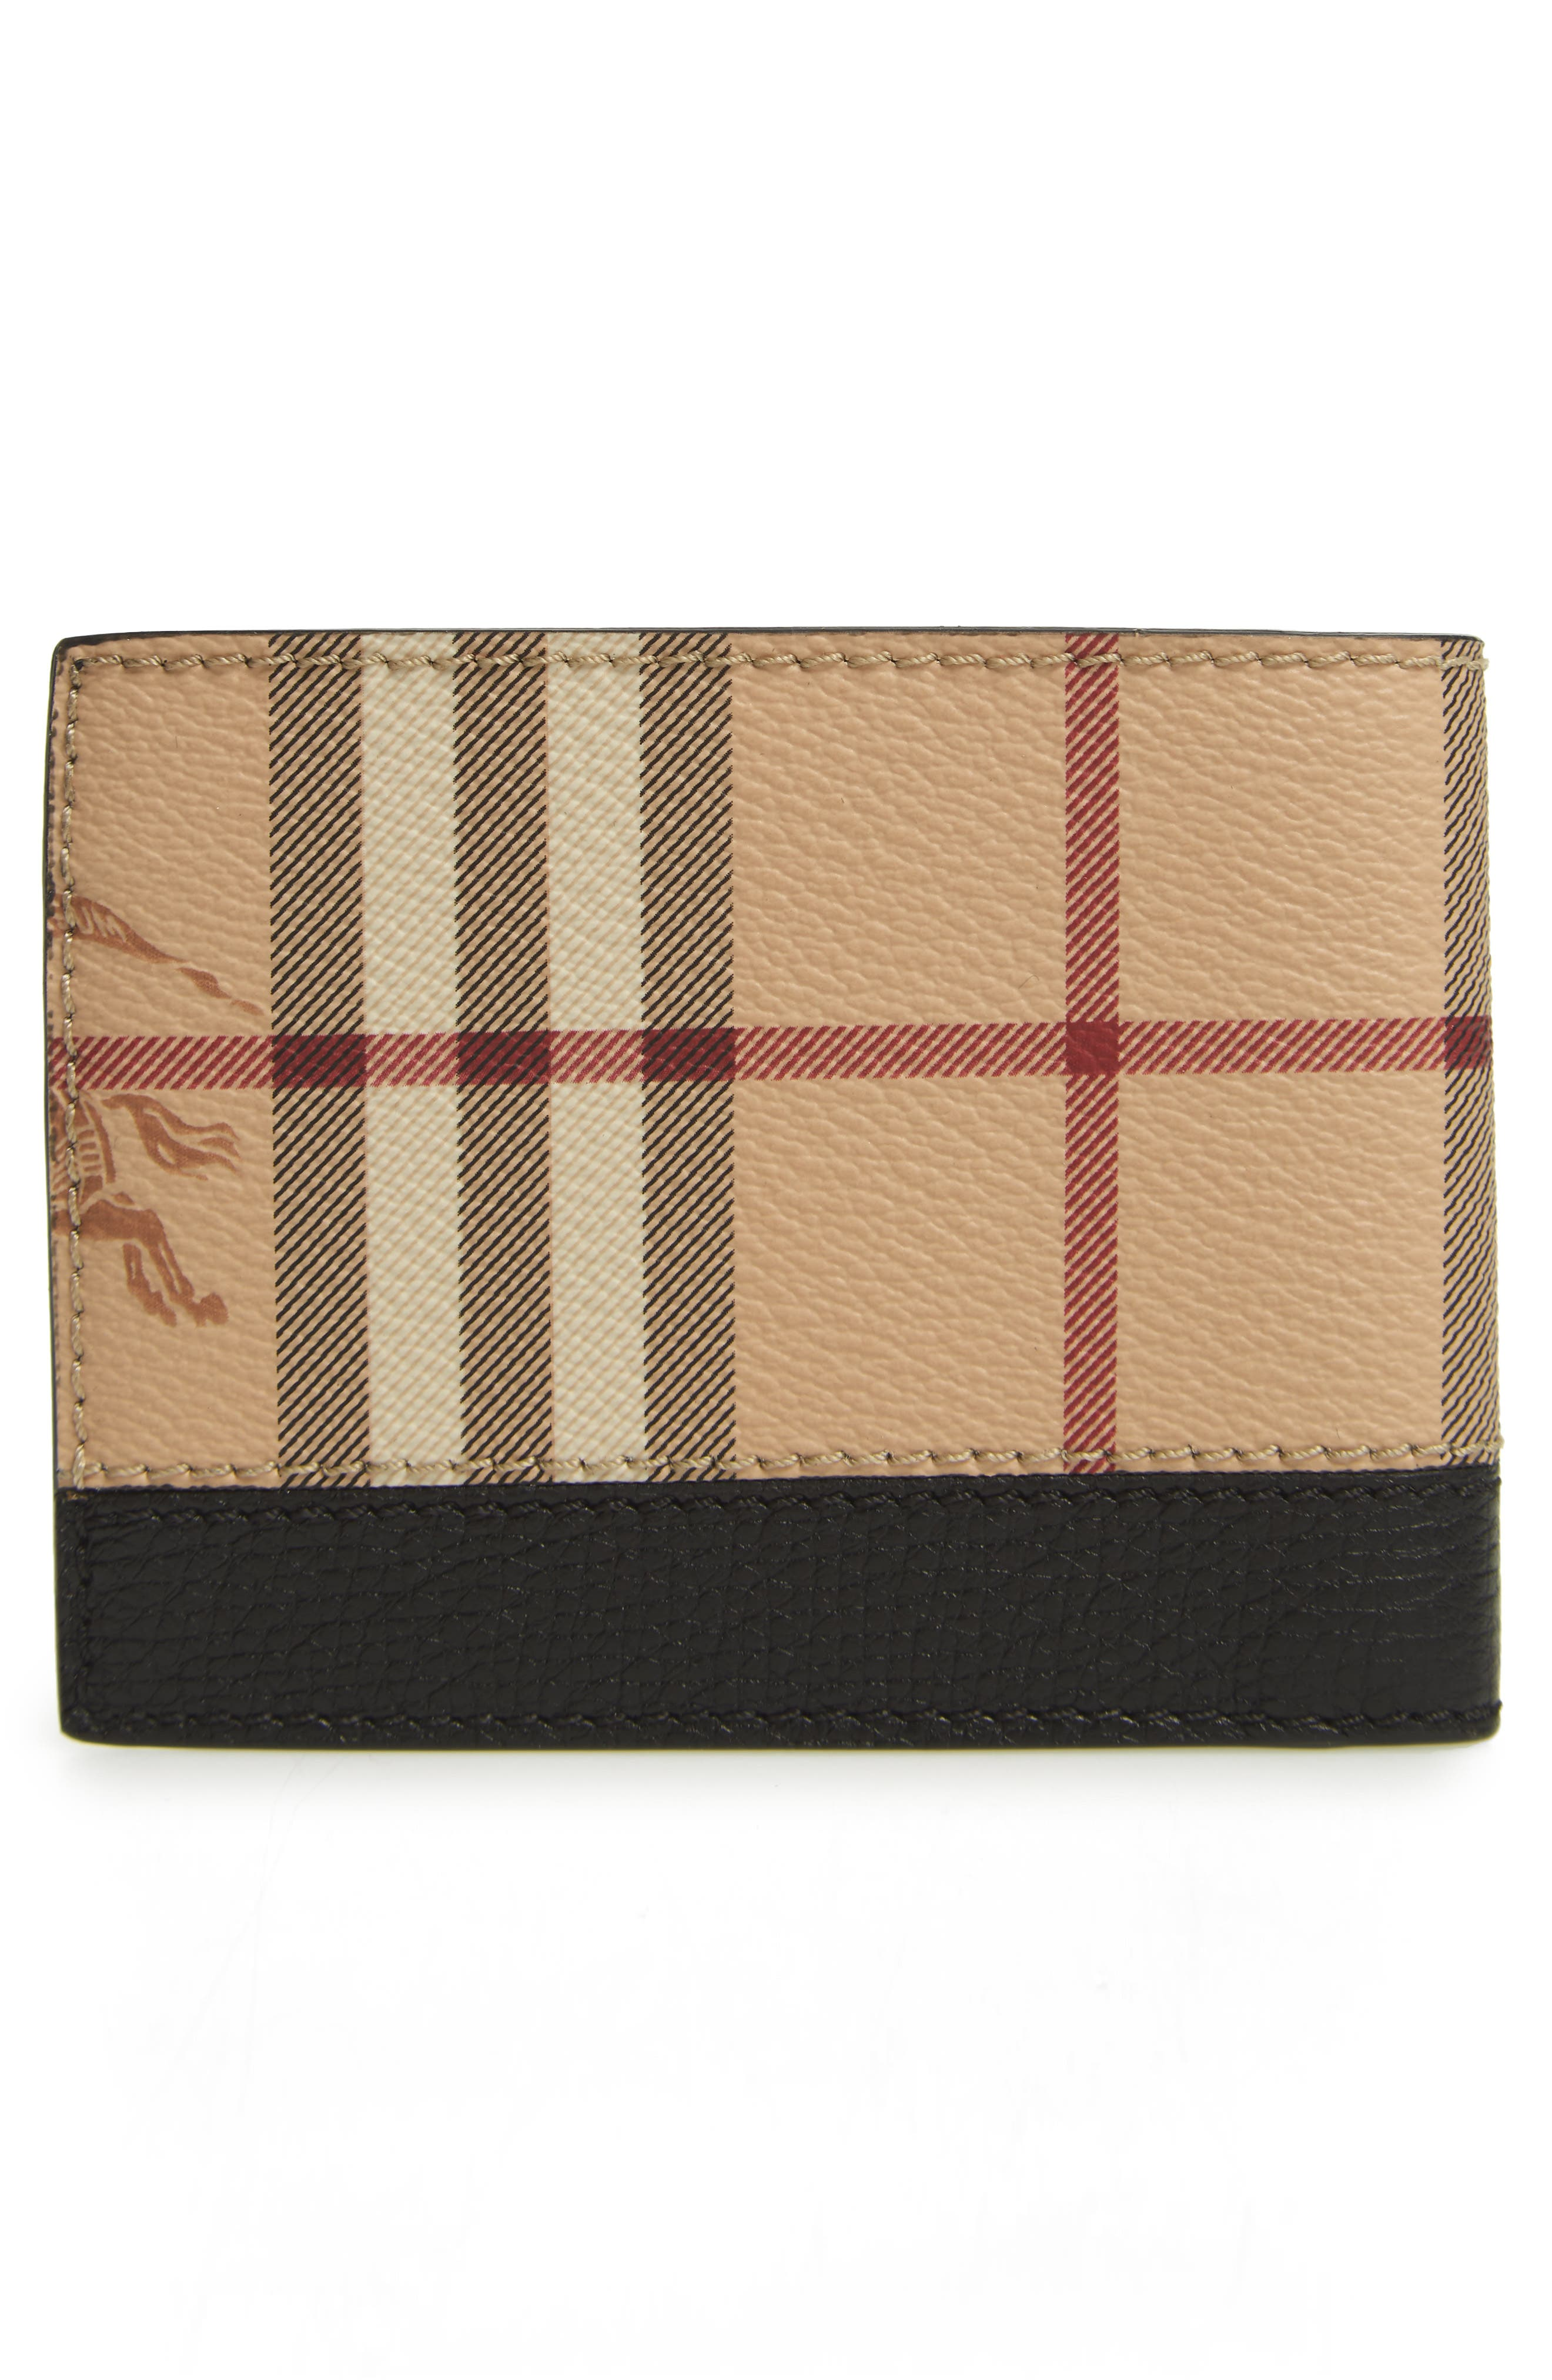 Haymarket Bifold Wallet,                             Alternate thumbnail 3, color,                             001